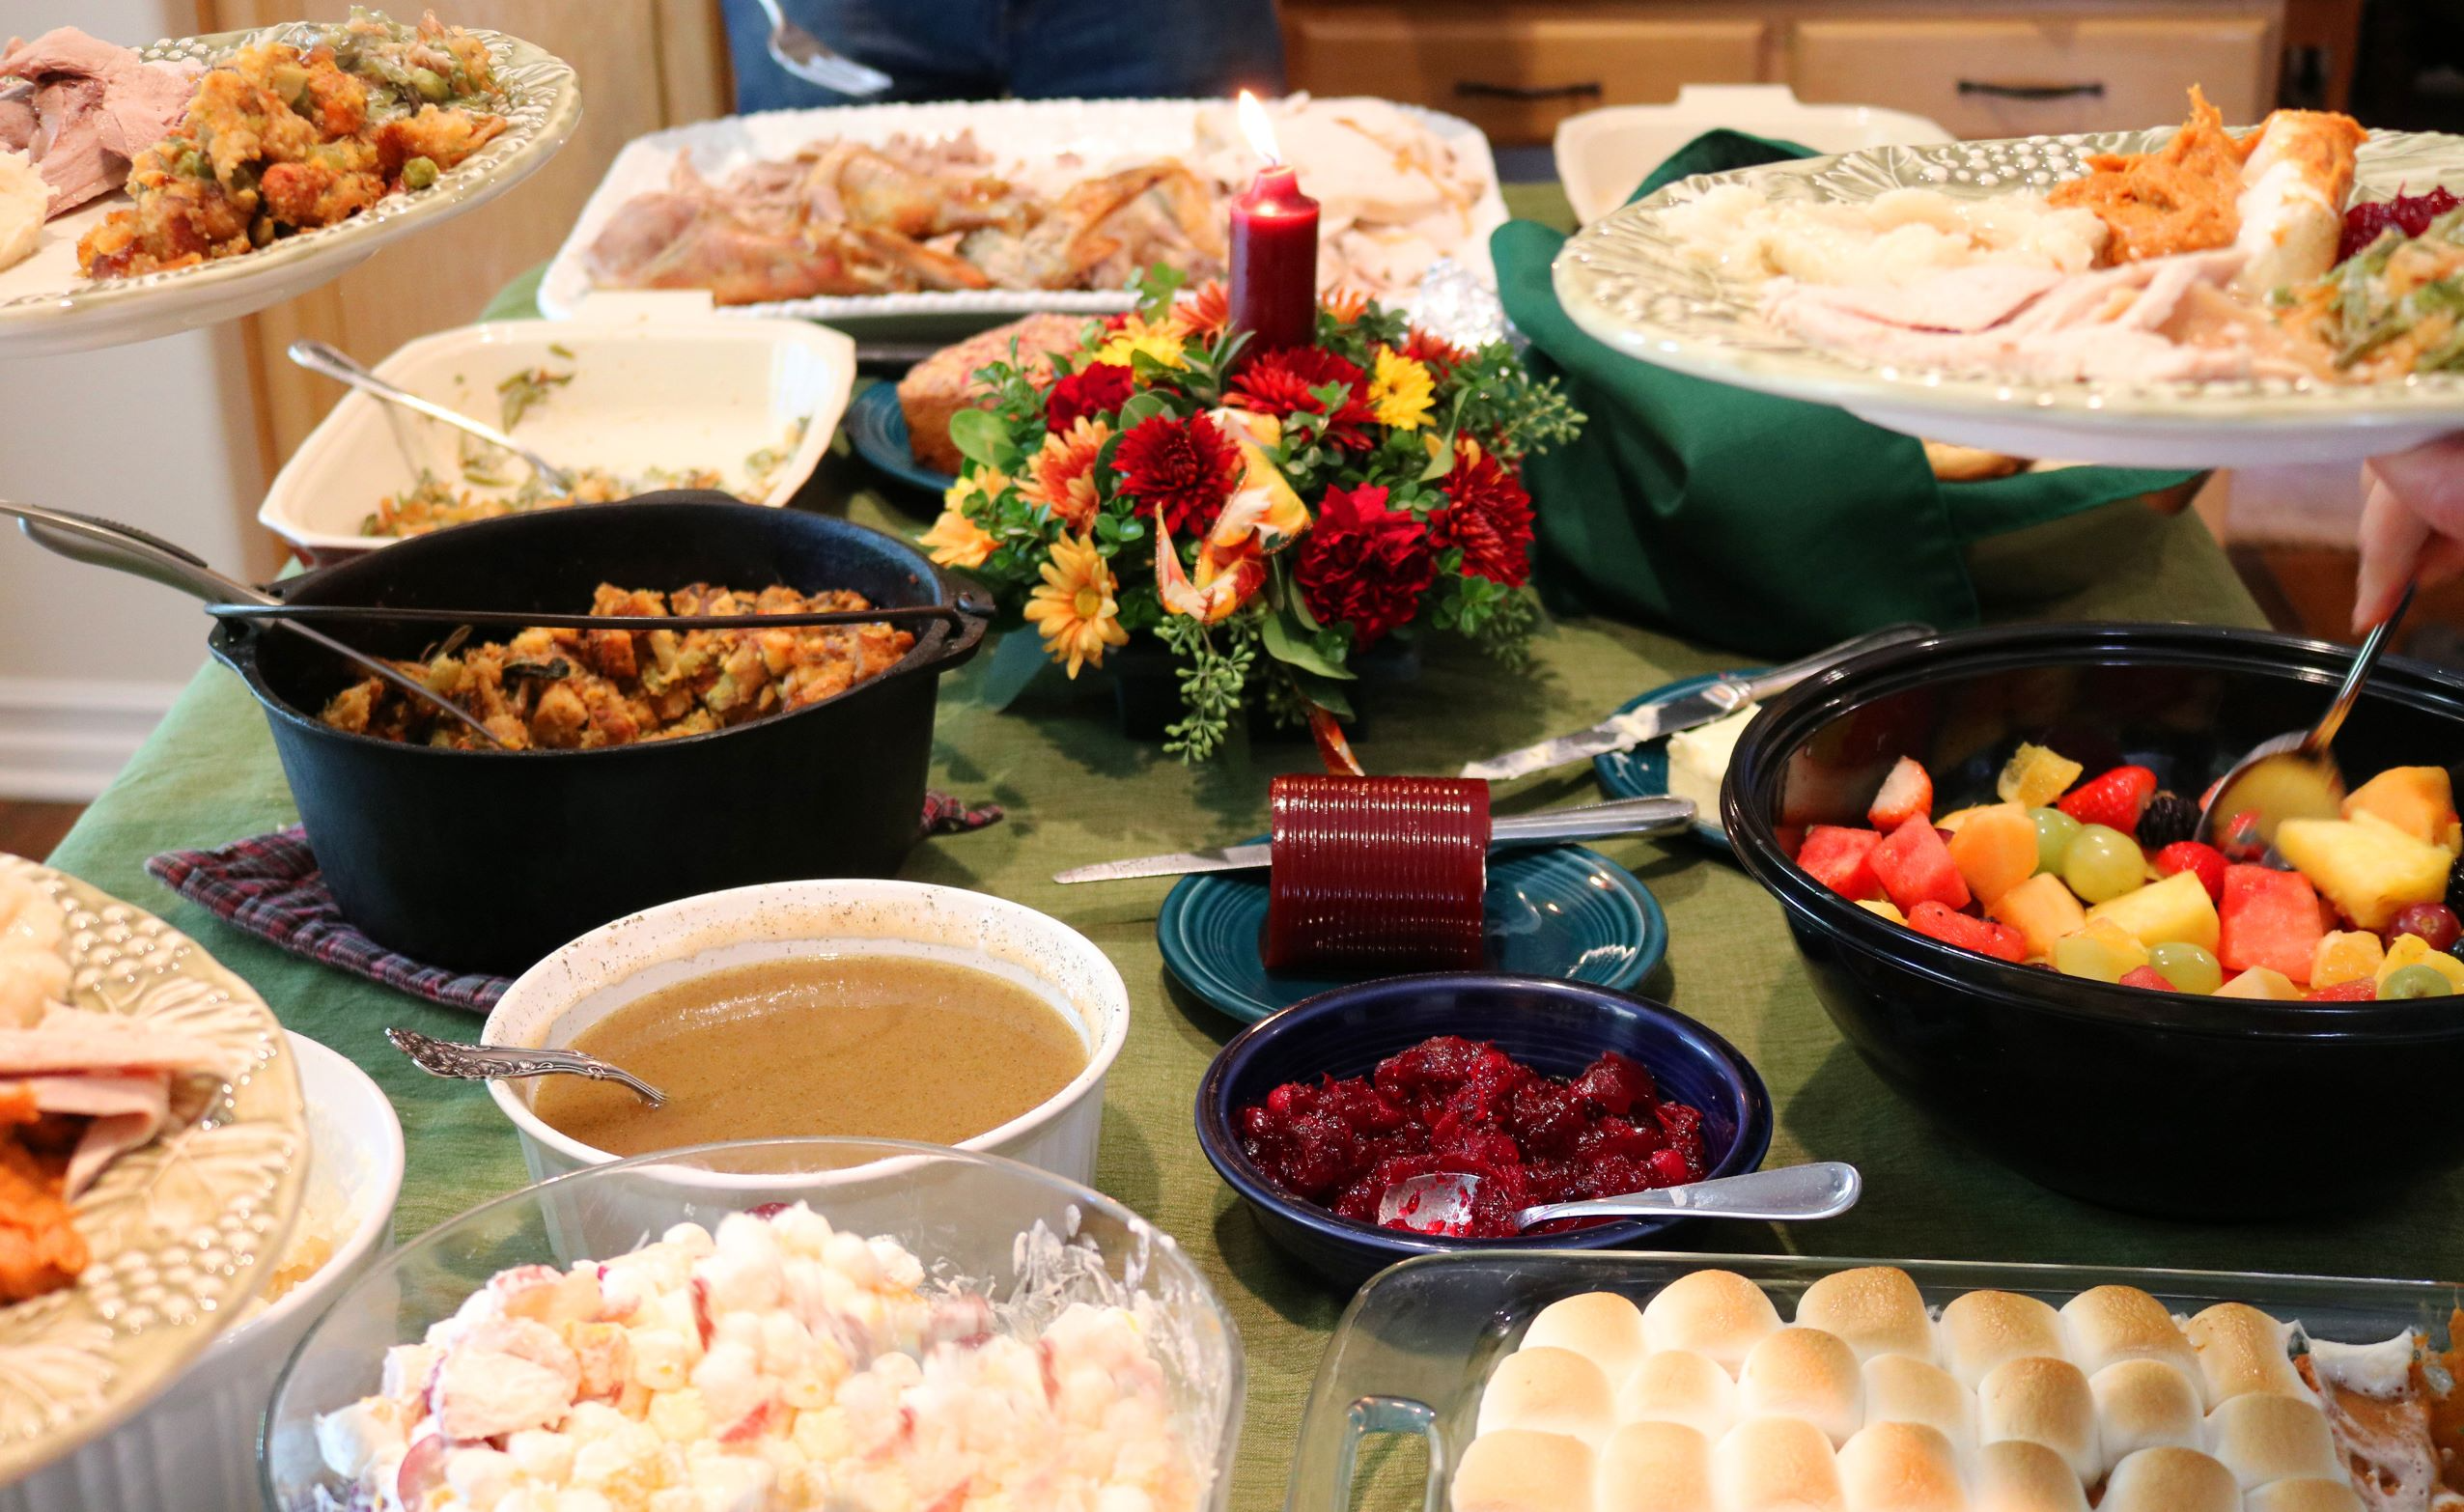 Thanksgiving buffet table with green tablecloth.